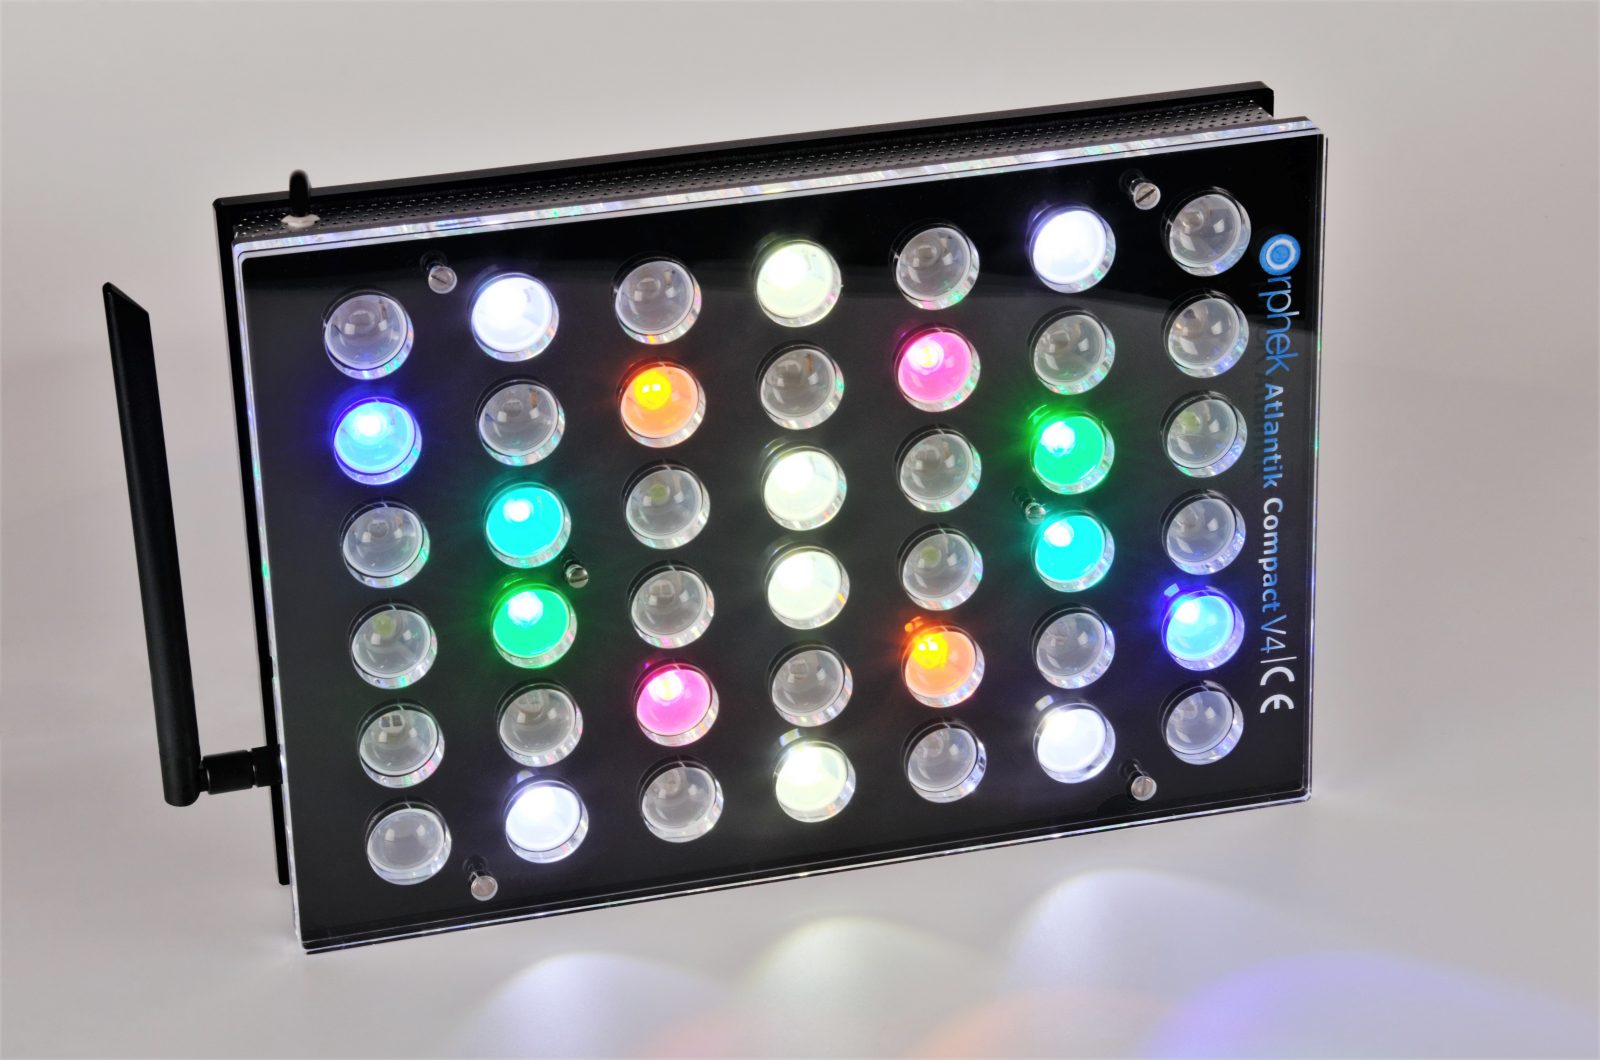 Orphek Aquarium LED Lighting Atlantik Compact V4 light on channel 1 + 4